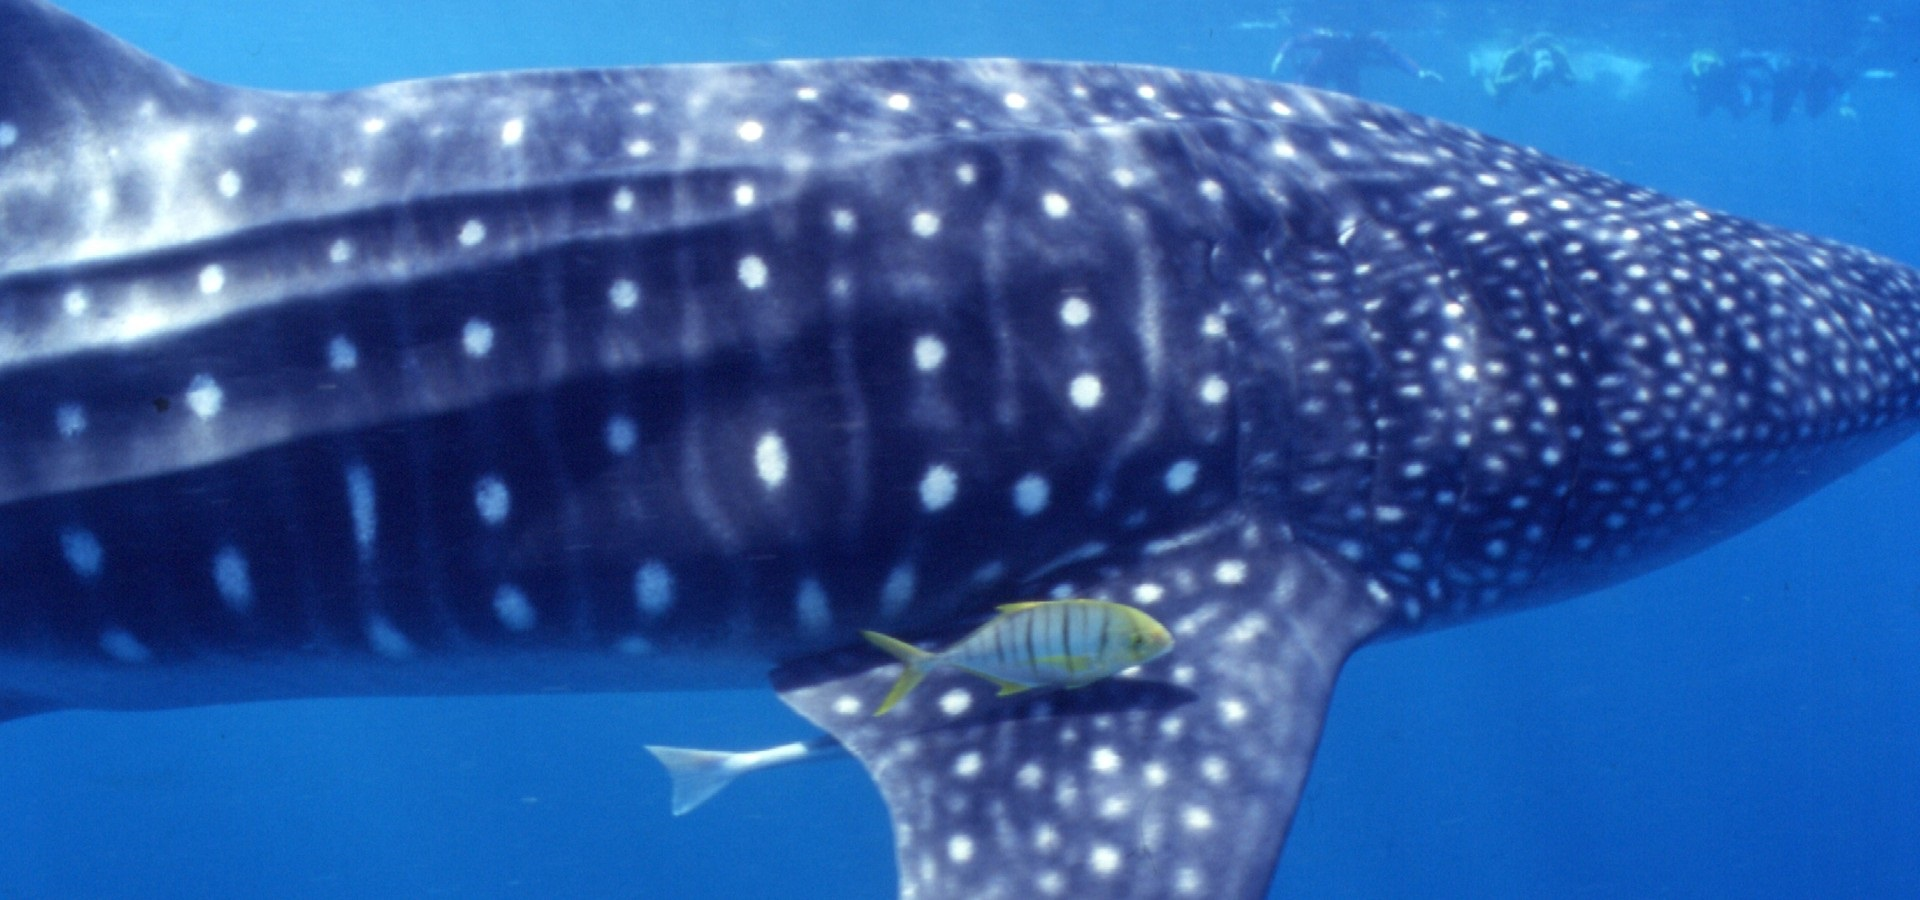 Whale Sharks Swimming Under Water - Copyright belongs to Brad Norman